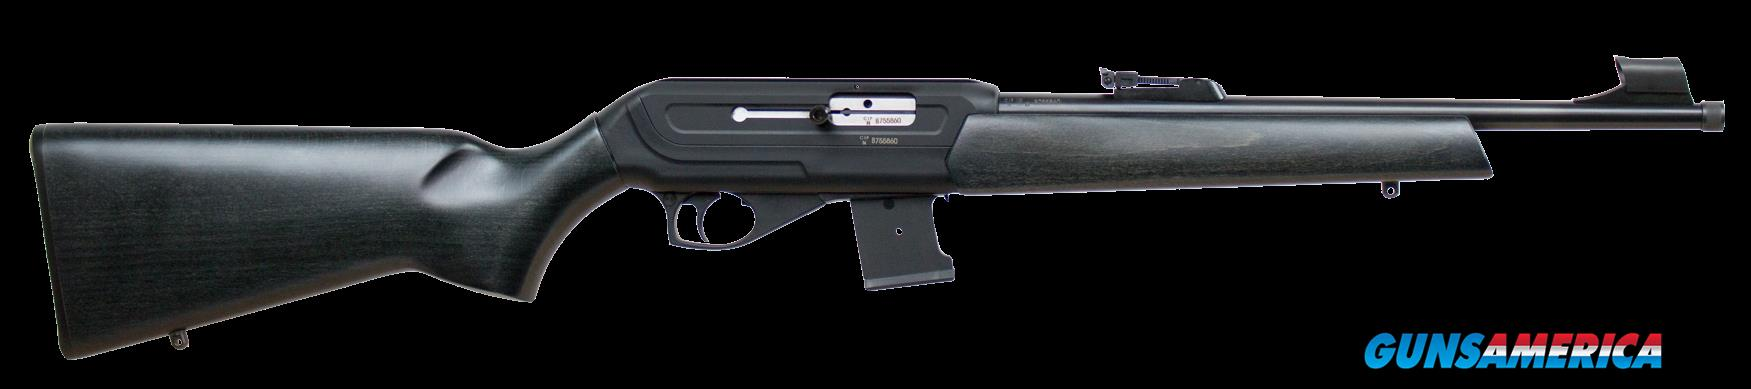 "CZ 02260 CZ 512 Carbine Semi-Automatic 22 Long Rifle 16.5"" 5+1 Beechwood Blk Stk  Guns > Rifles > C Misc Rifles"